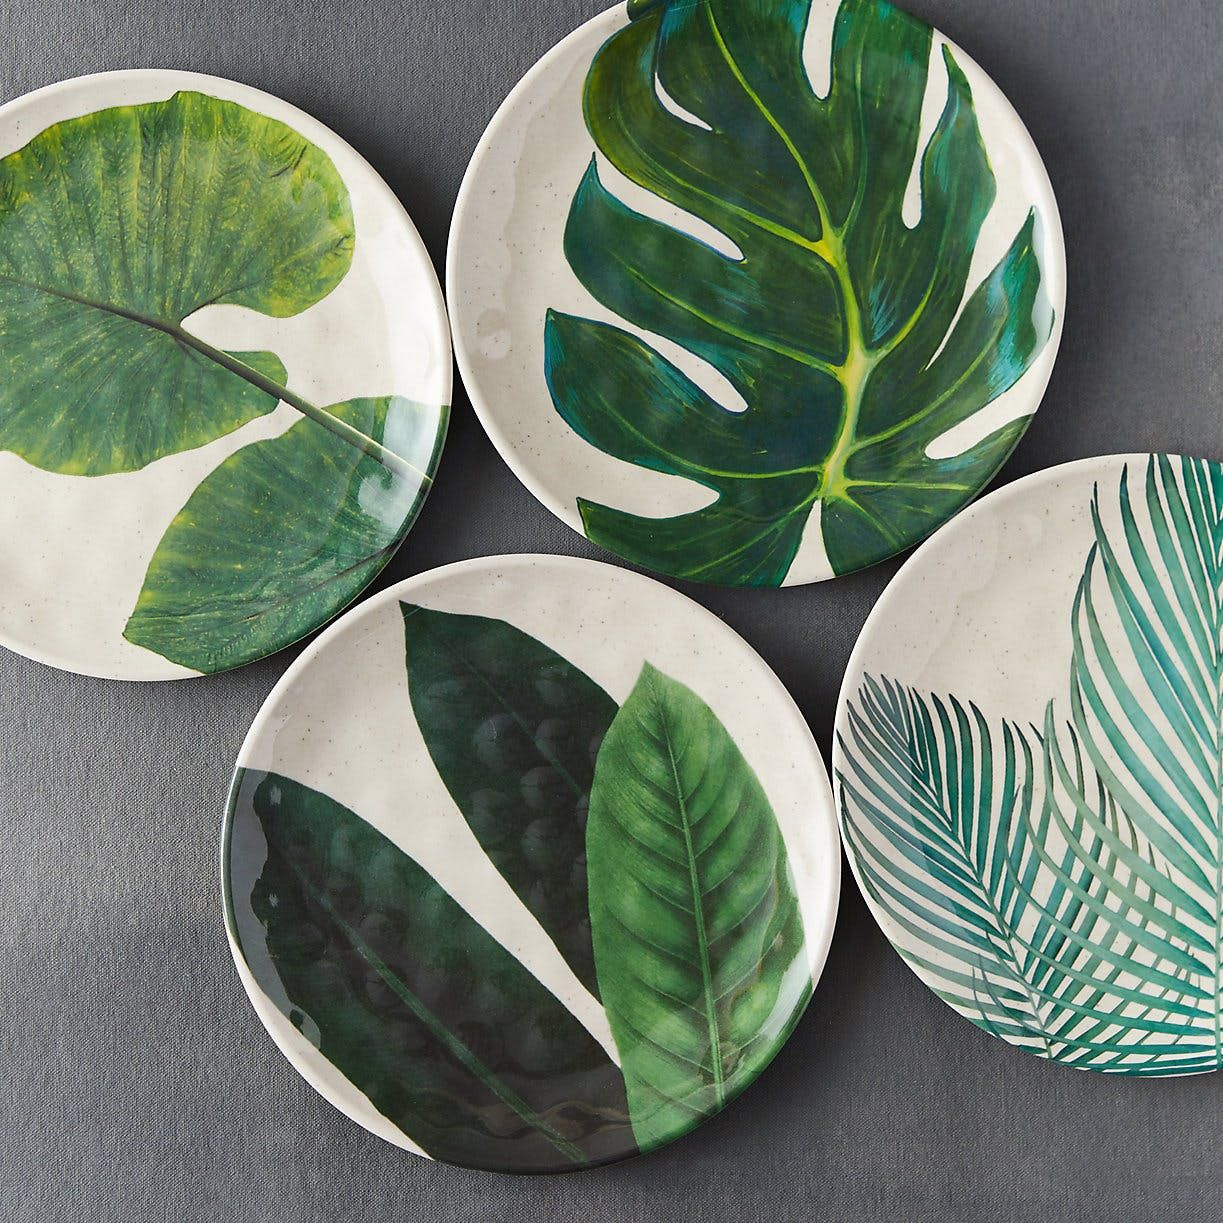 Instead Of Disposable Paper Or Plastic Plates Elevate Your Next Outdoor Dinner Party With Unbreakable Melamine Dishes That Bring Style To The Table